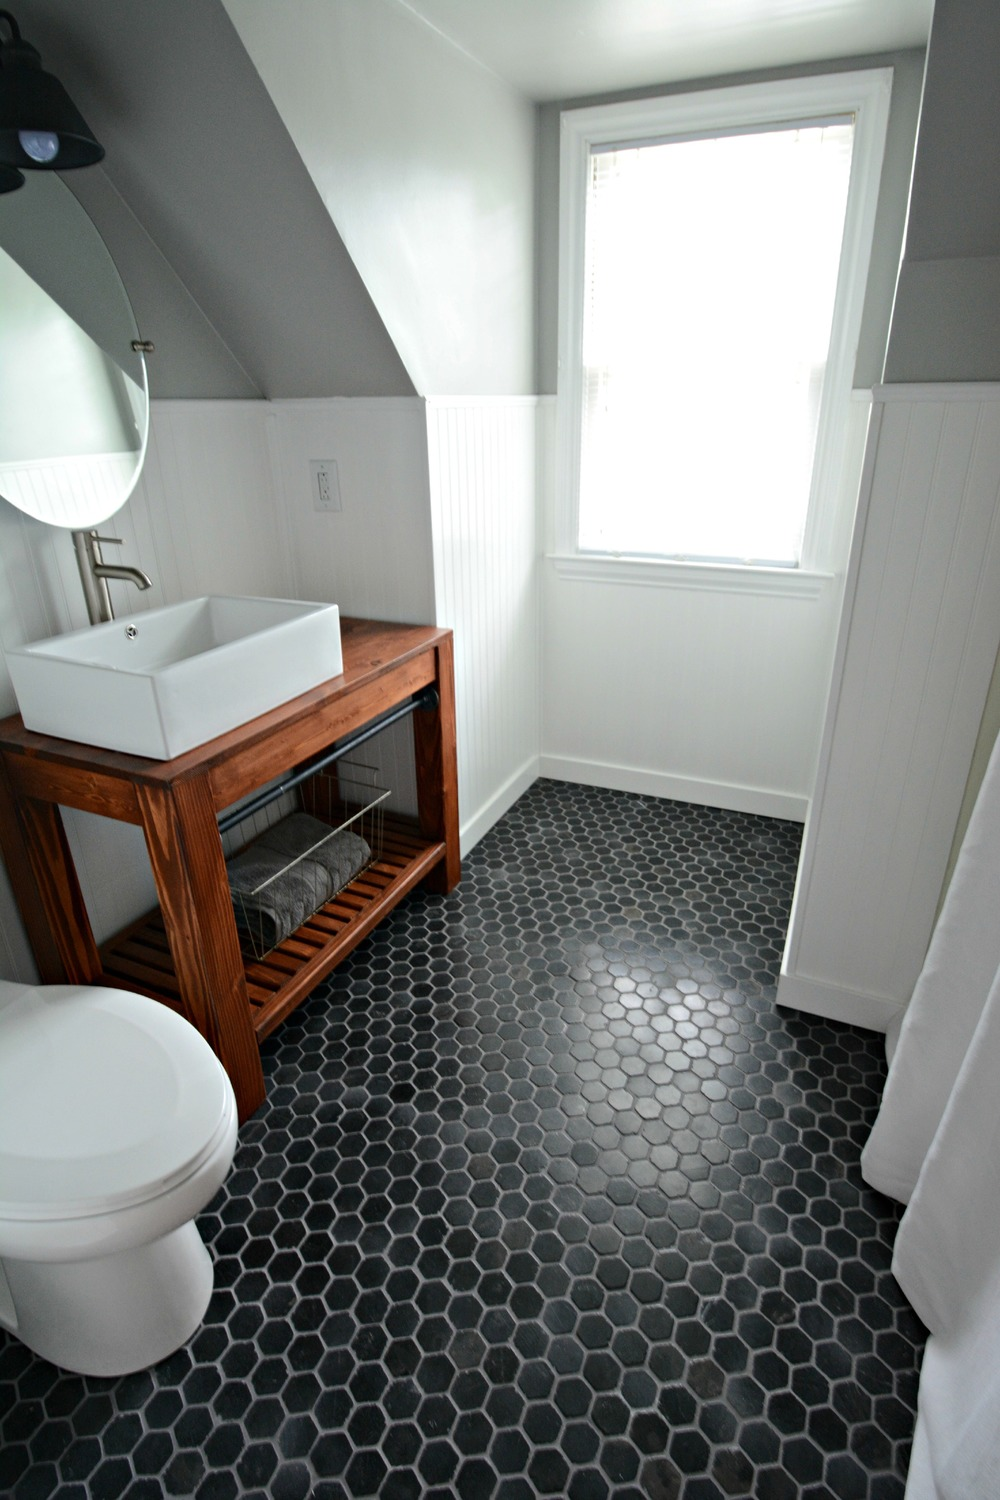 30 ideas on using hex tiles for bathroom floors nice bathroom design kraupm95w1vd8nj2 dailygadgetfo Image collections